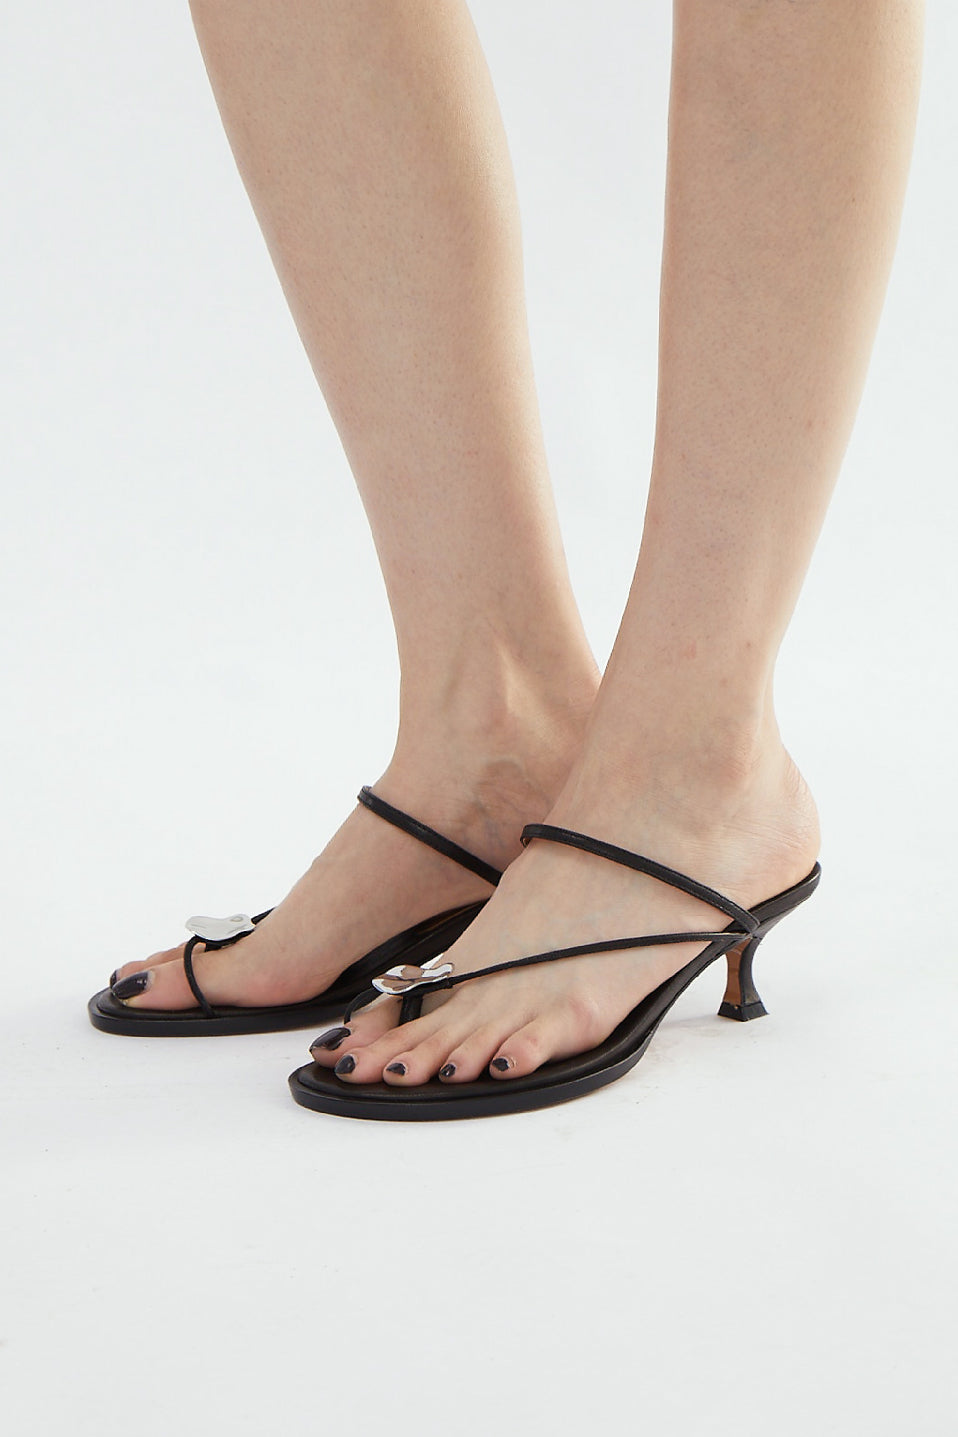 Cora Metallic Decorative Sandals - Black